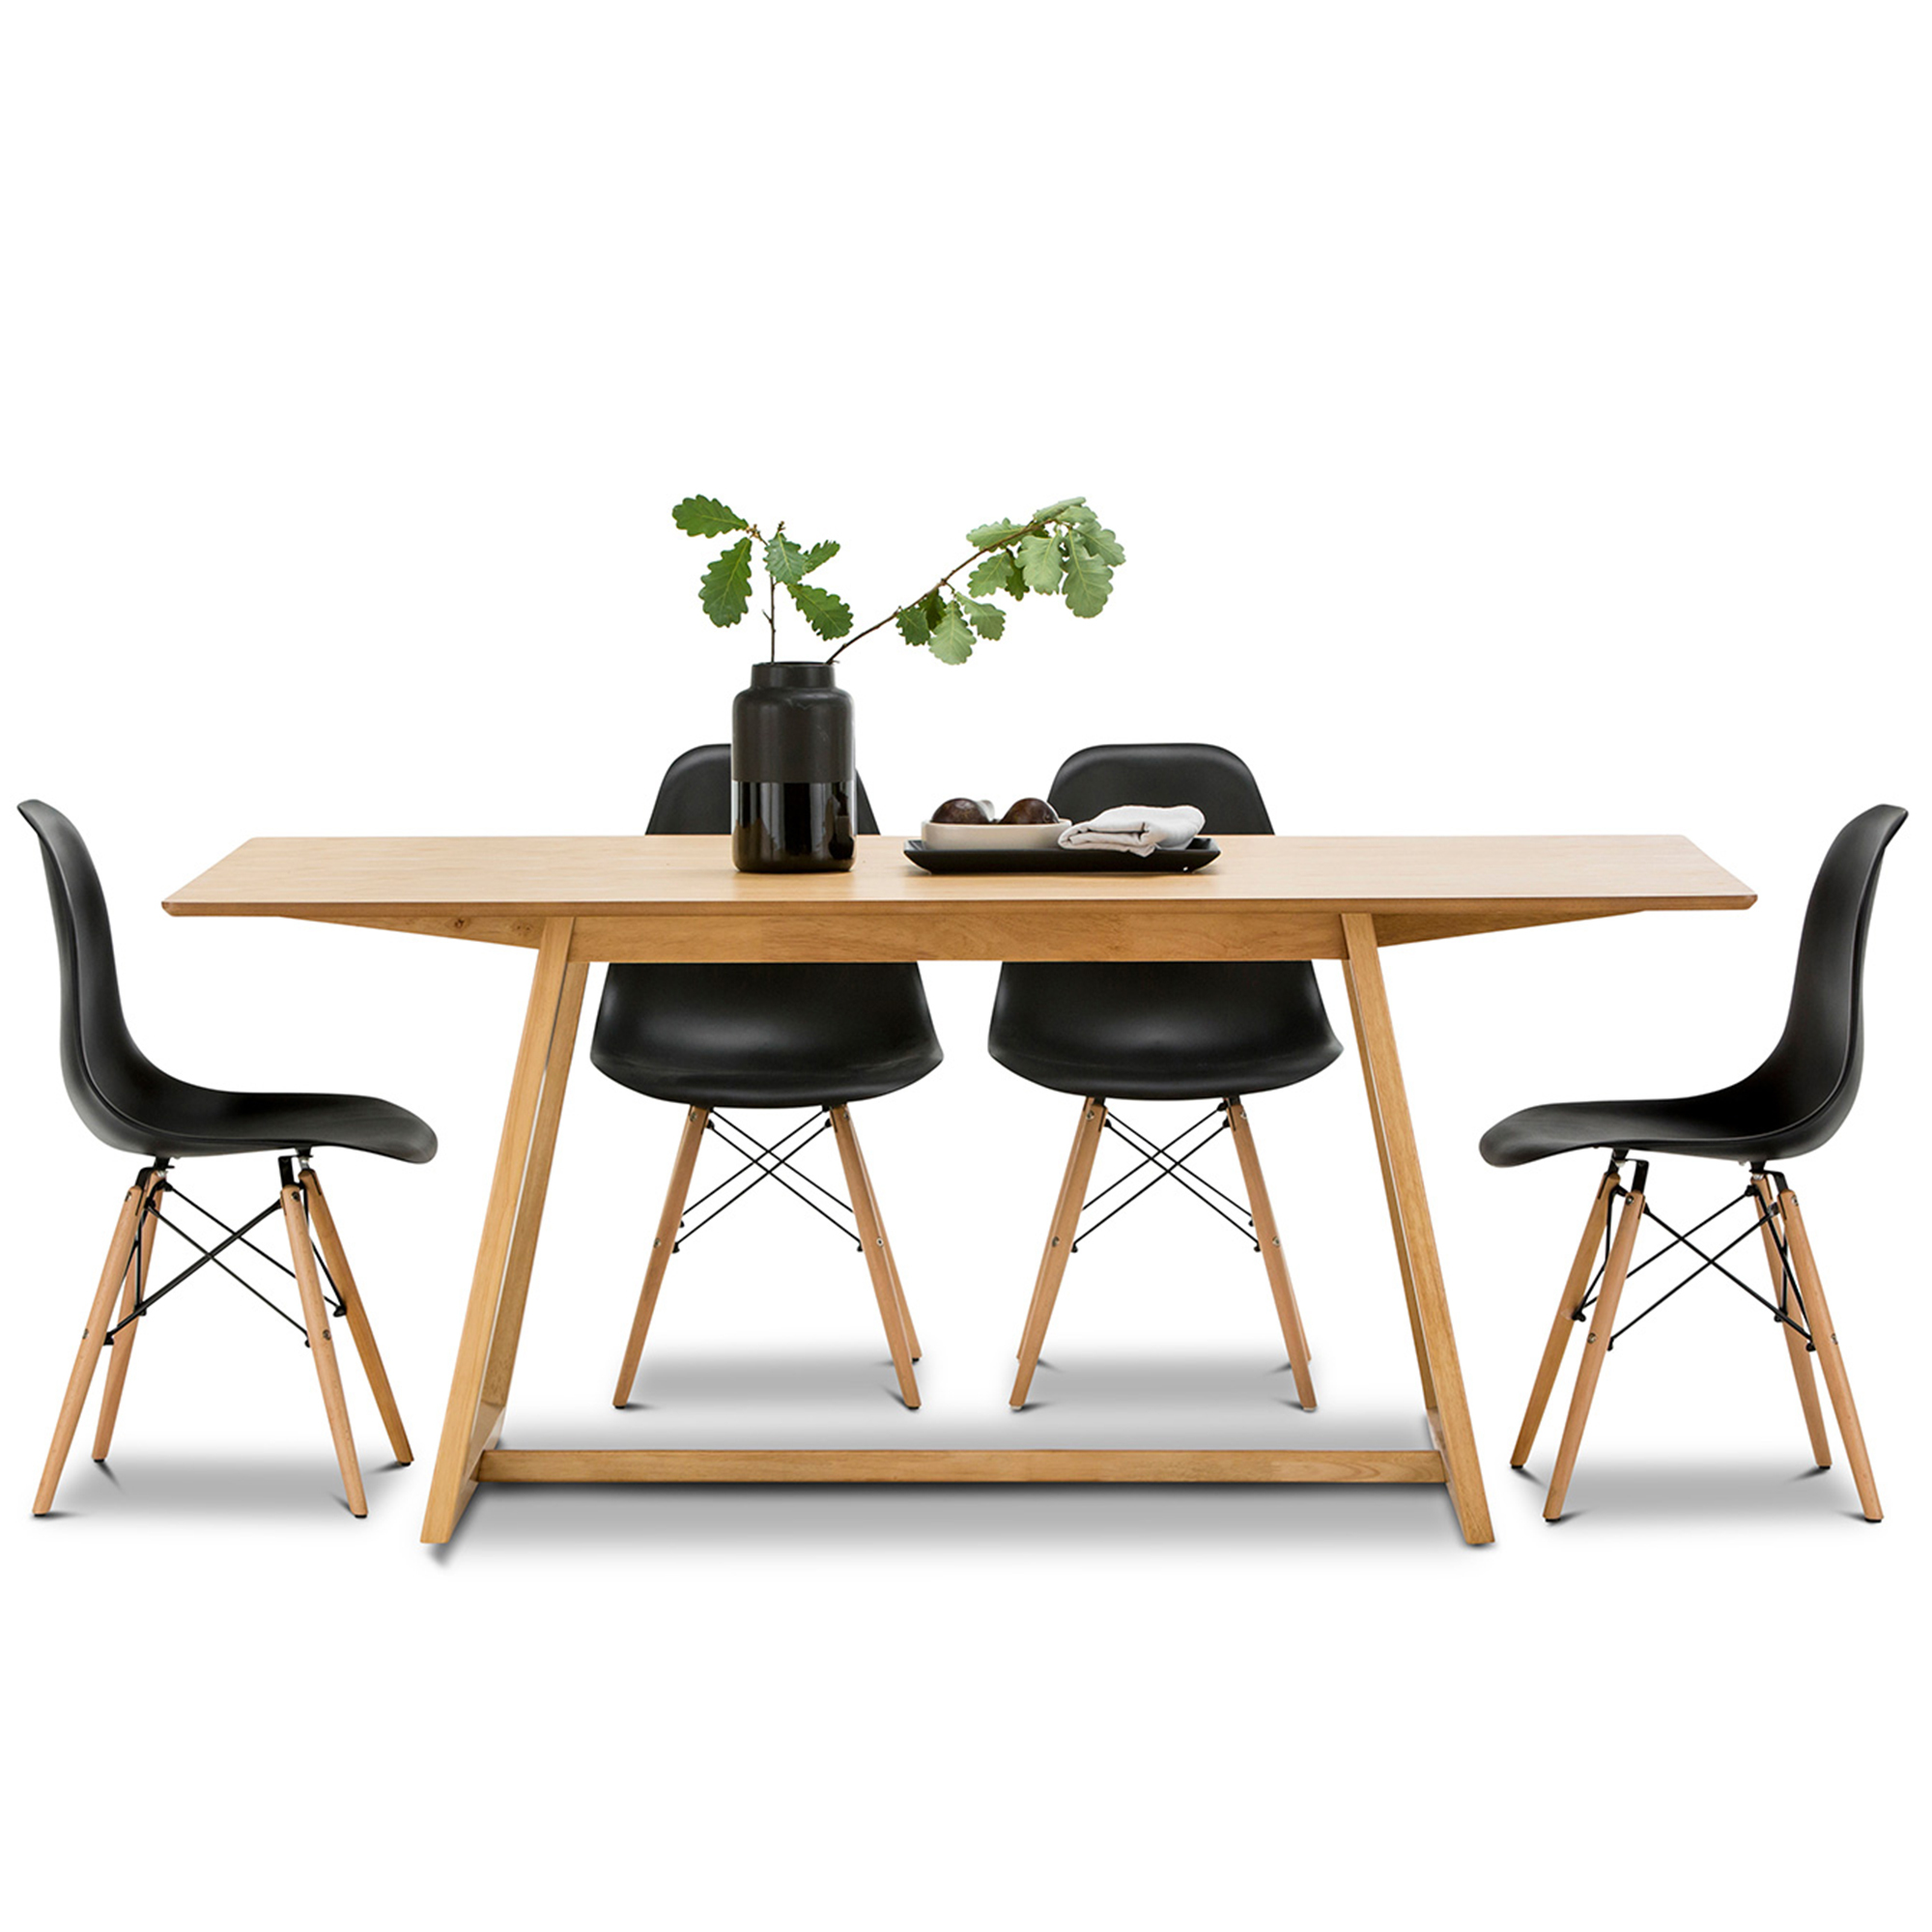 SKU #FEEL1486 Manhattan Dining Table U0026 Eames Replica Chairs Set Is Also  Sometimes Listed Under The Following Manufacturer Numbers: 41 136 Kit 1, ...